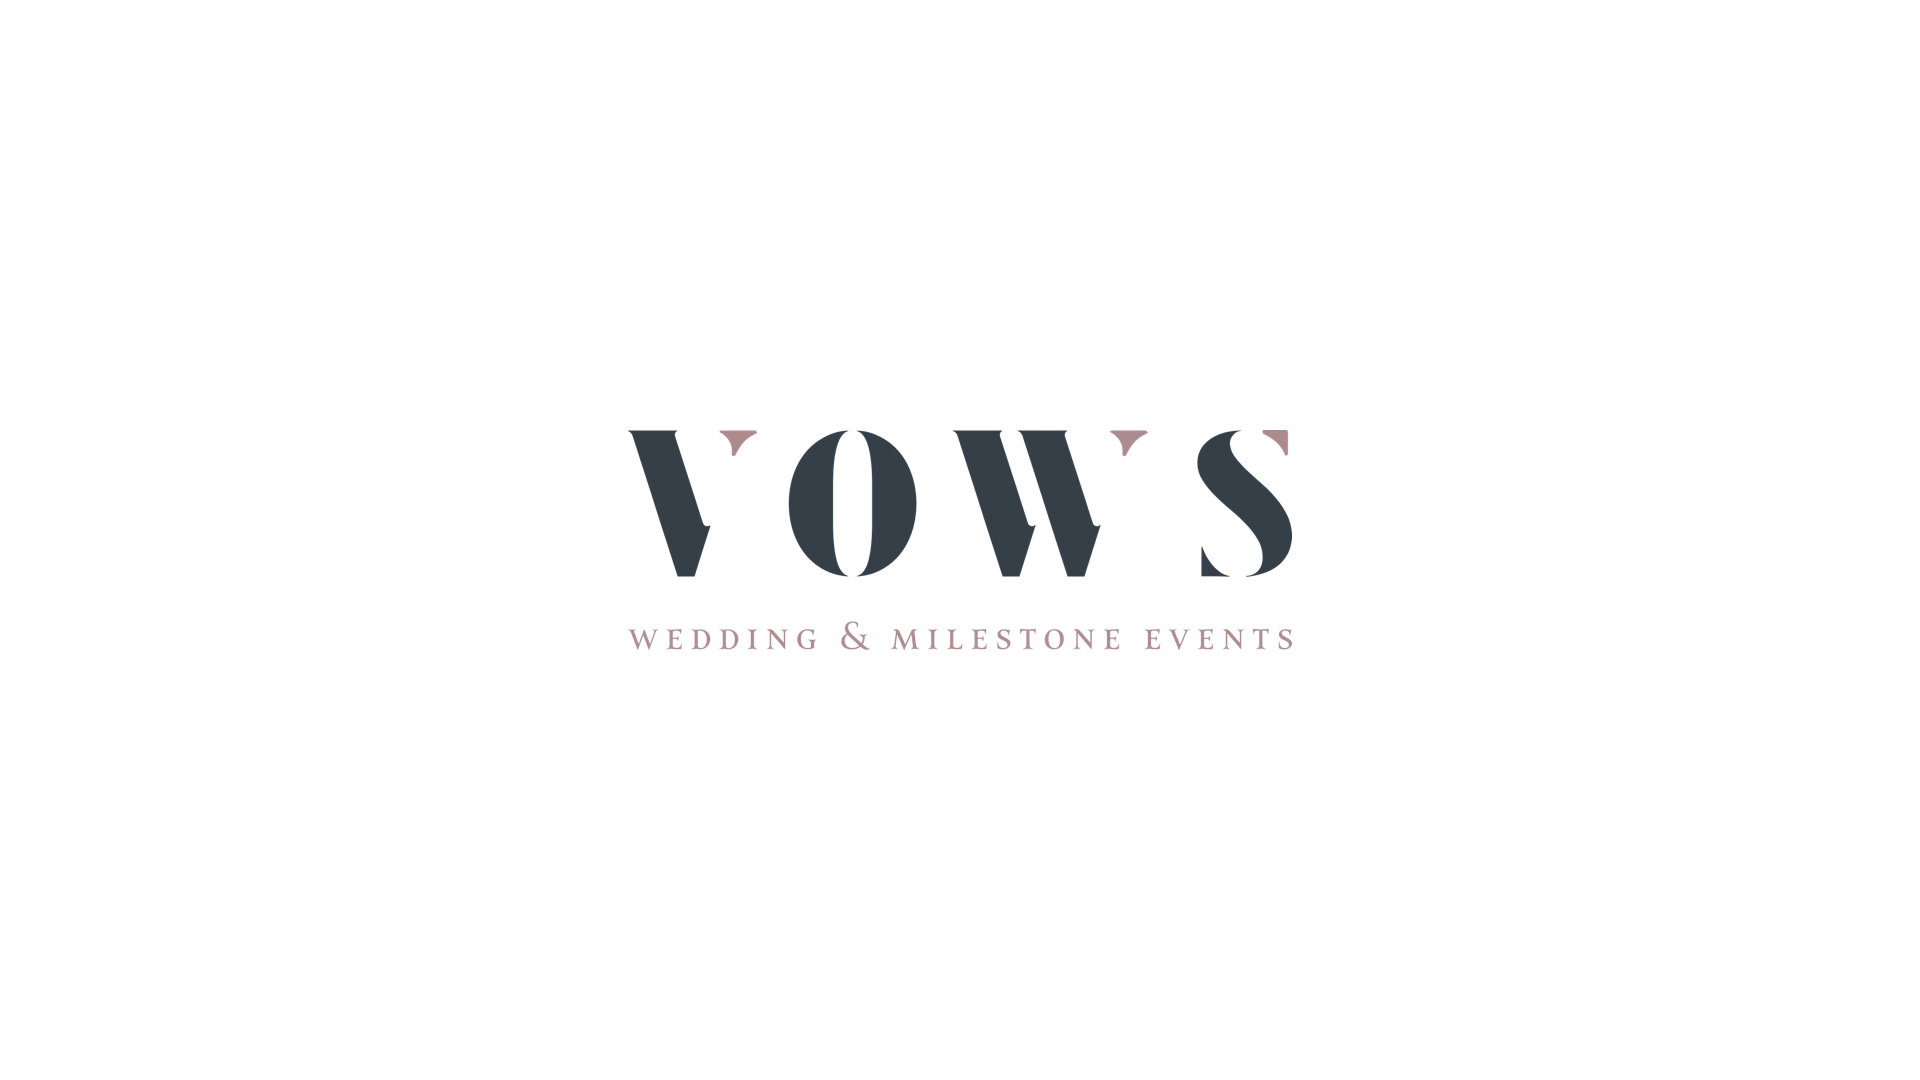 vows-wedding-planner-events-strawberry-brand-studio.jpg